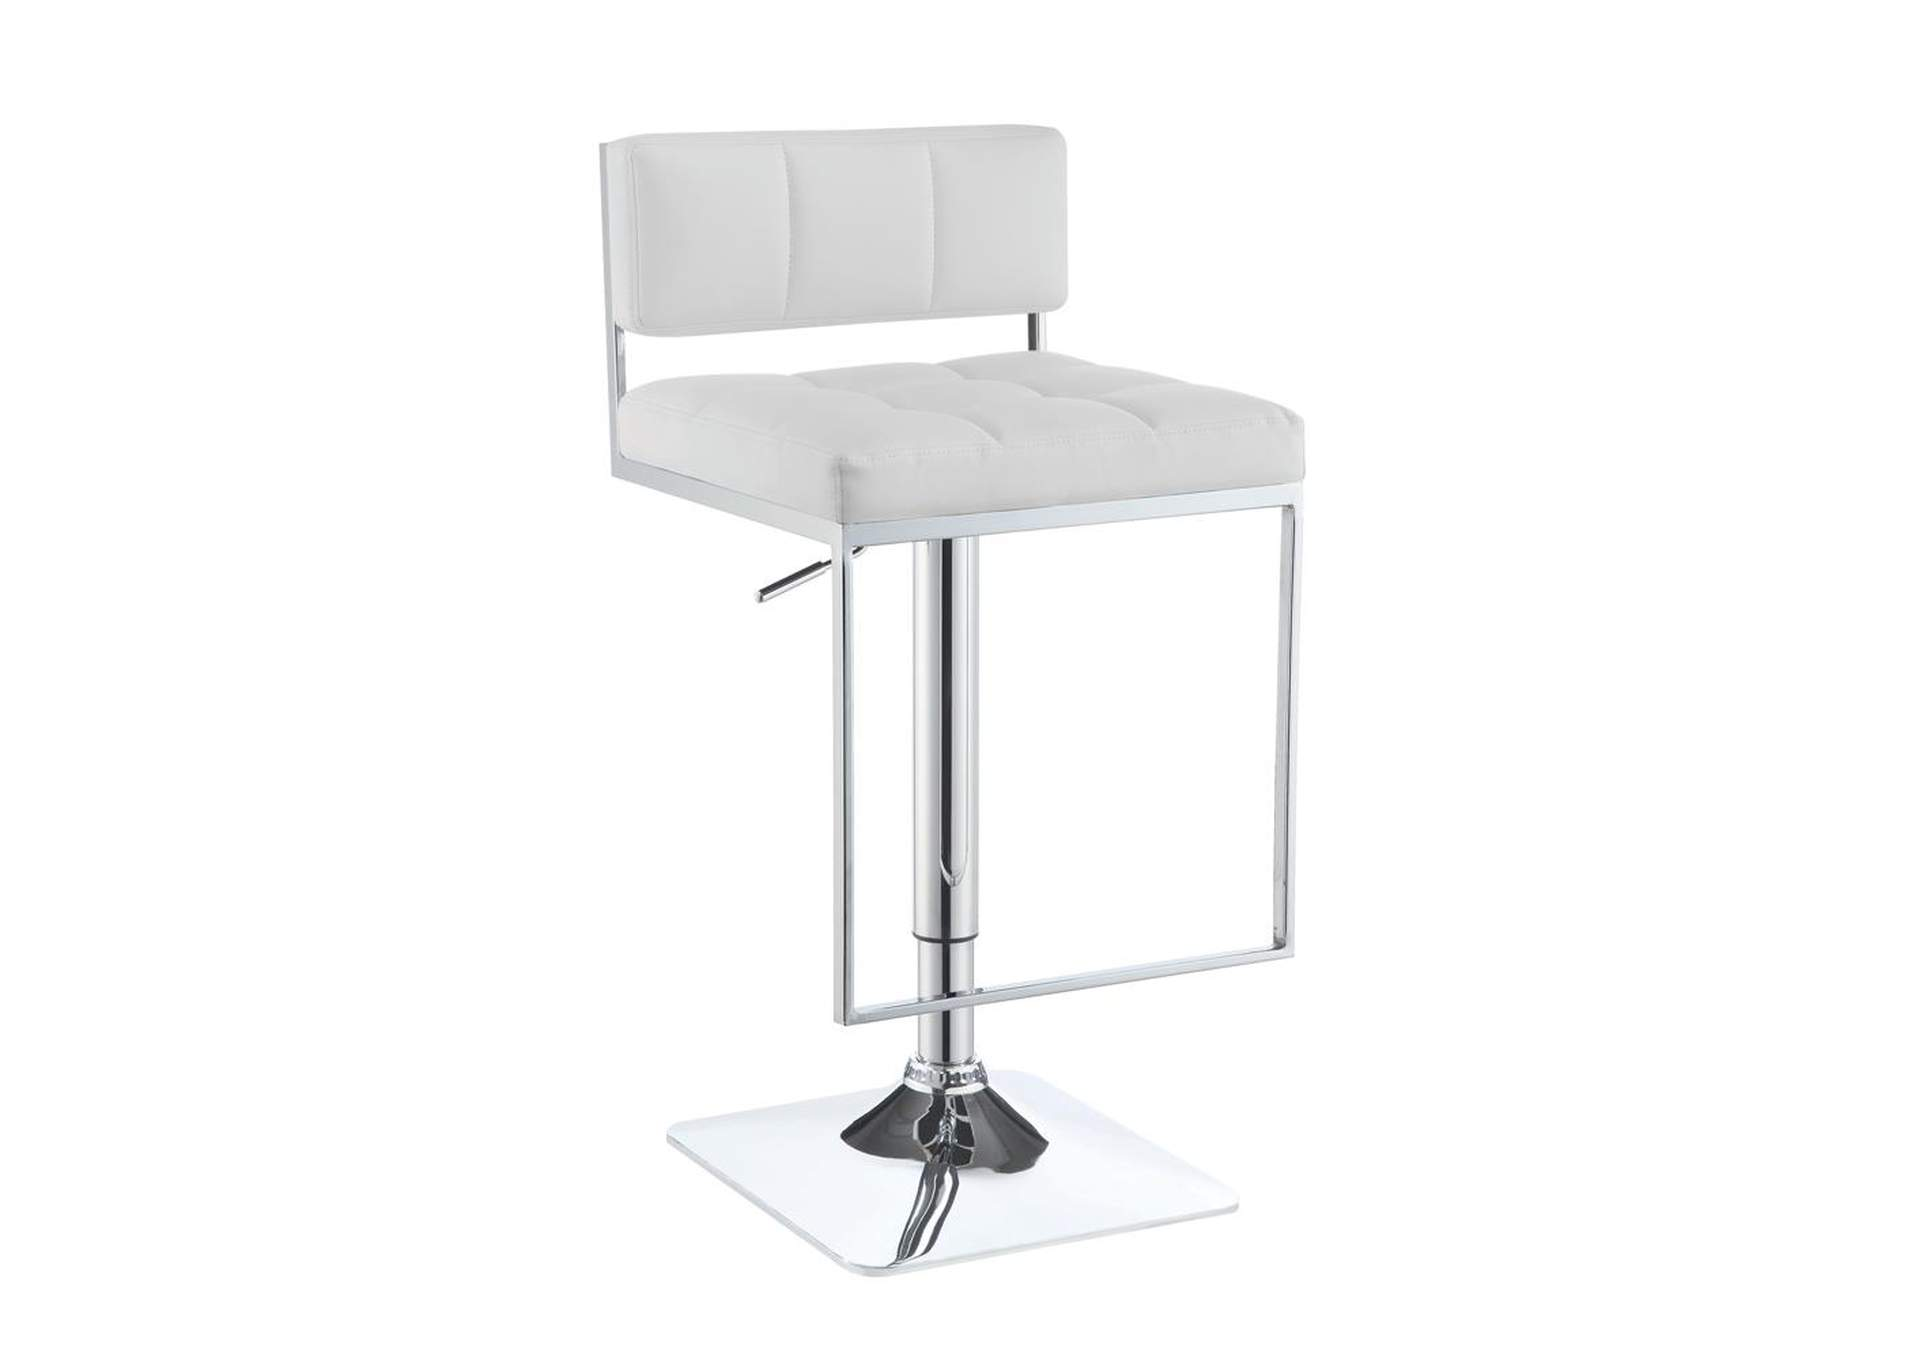 Adjustable Bar Stool White And Chrome,Coaster Furniture